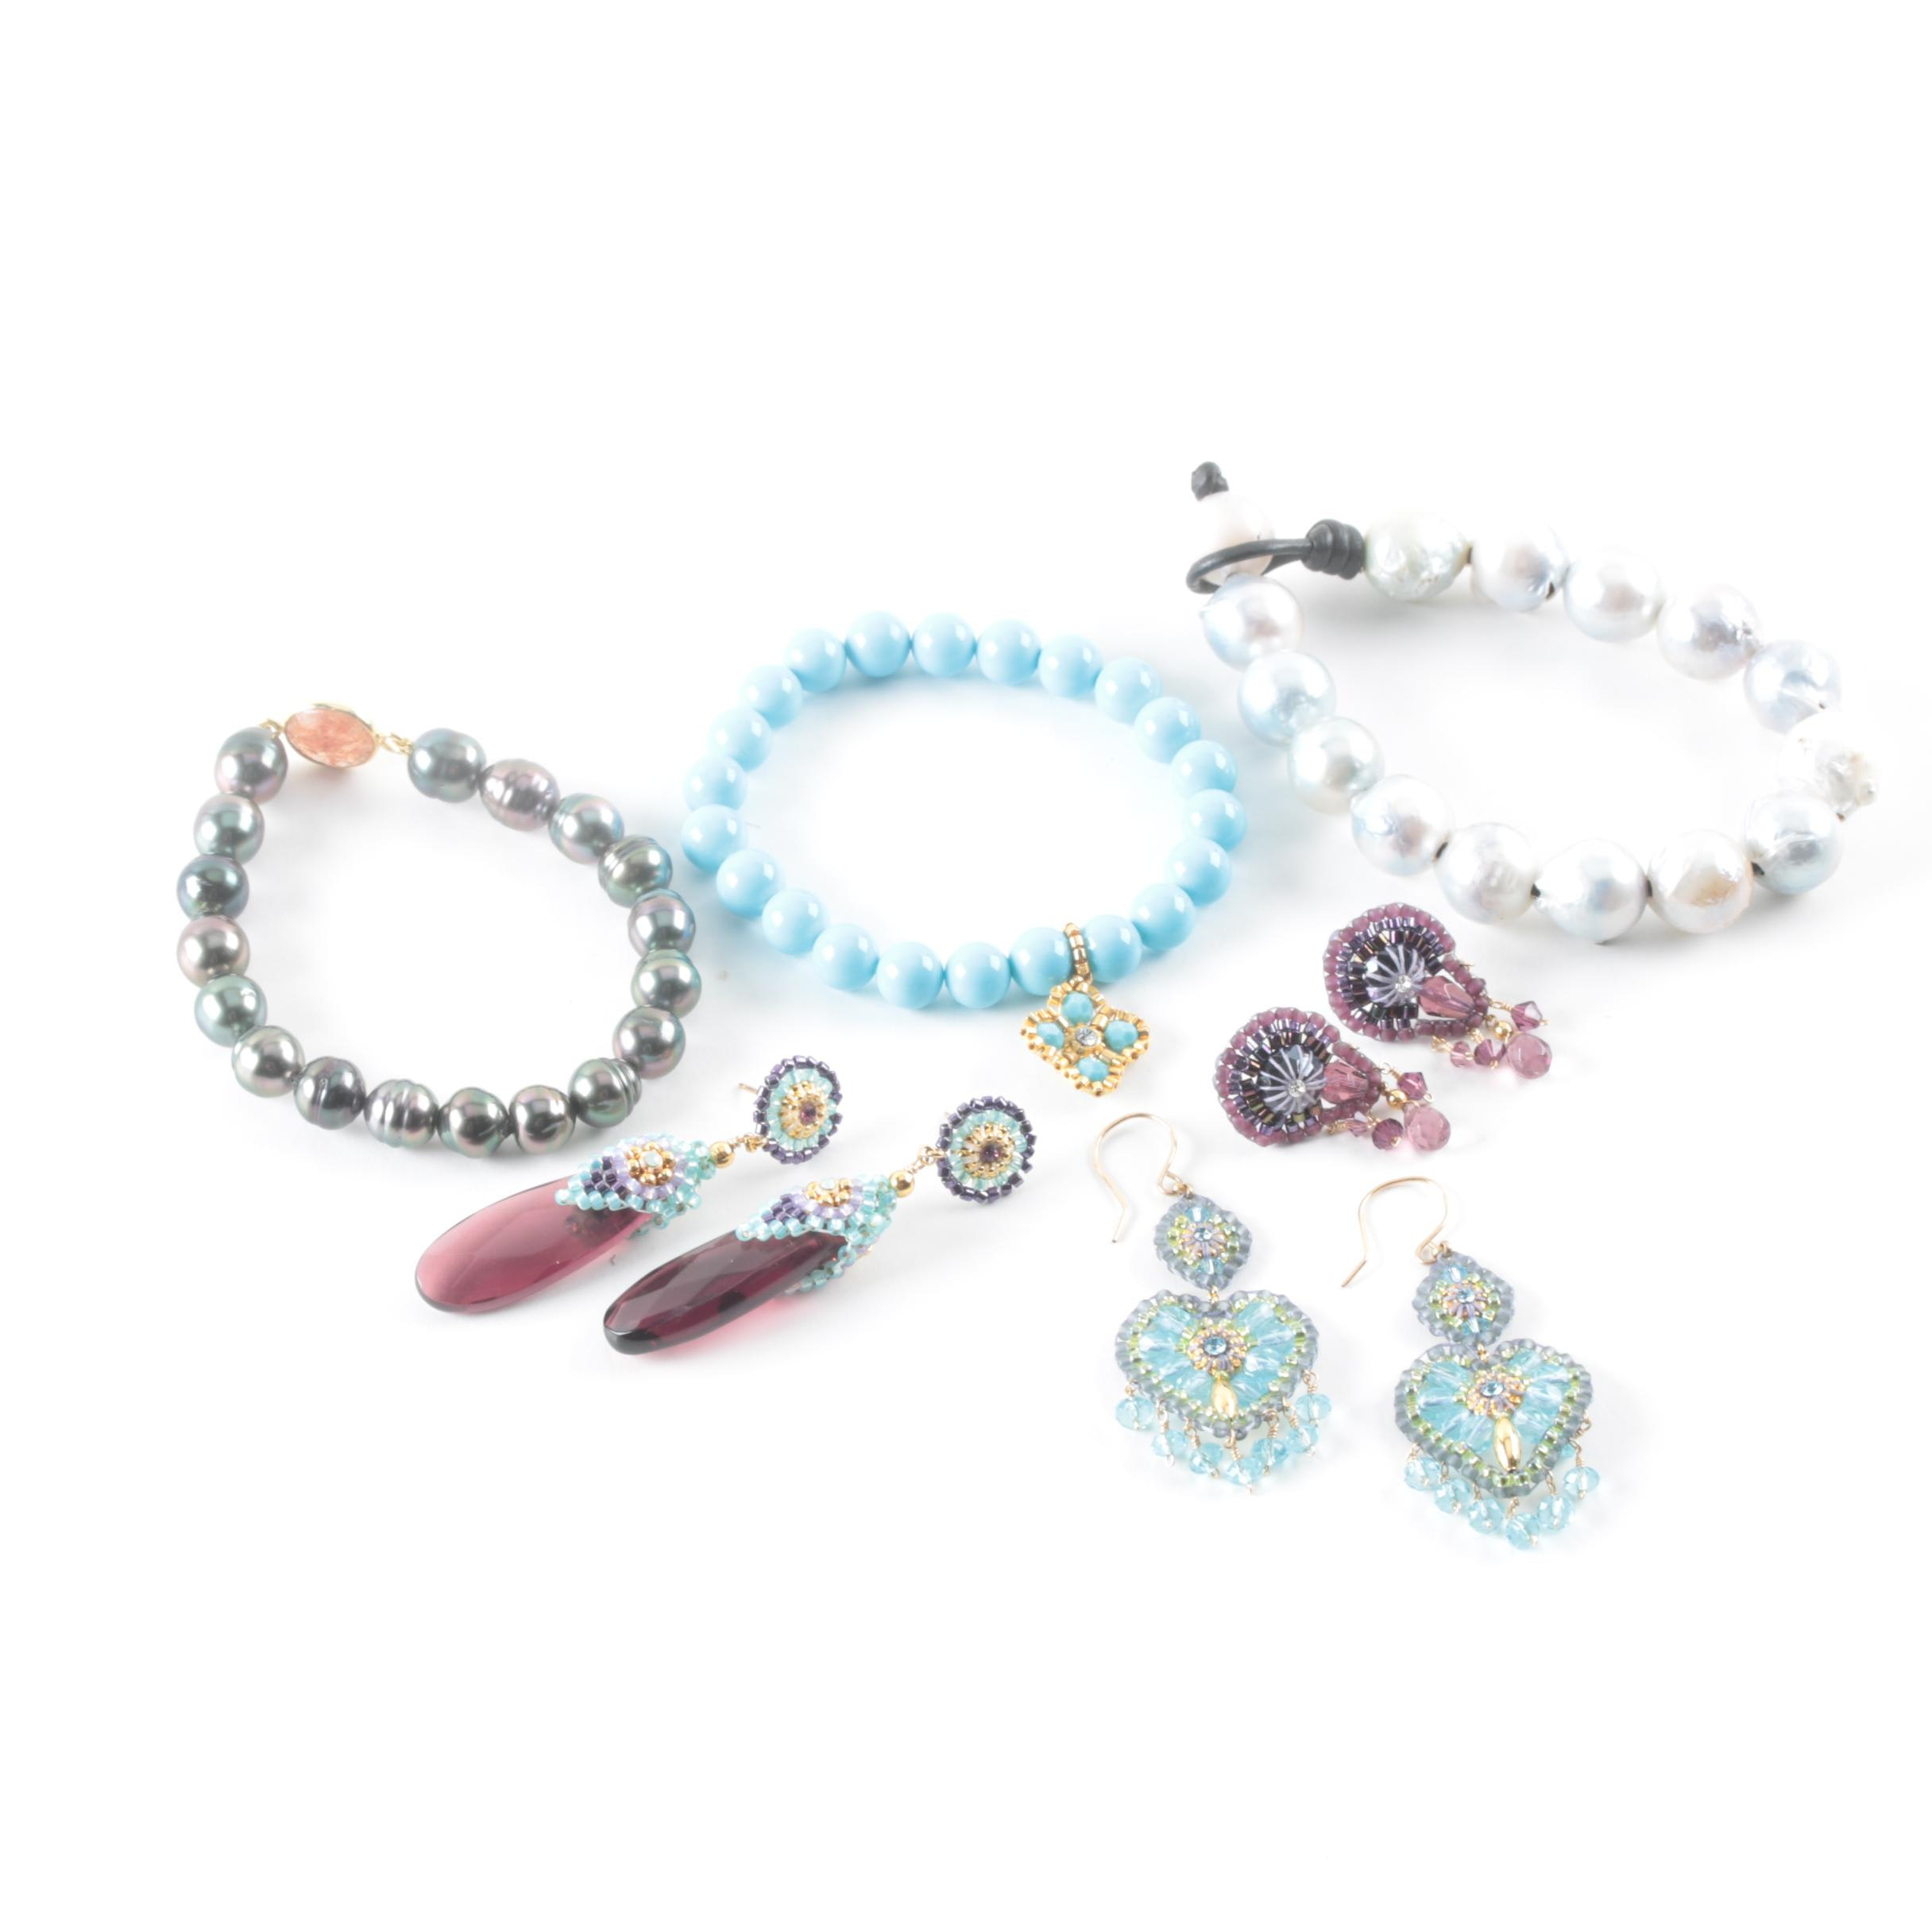 Cultured Pearl Glass and Imitation Pearl Jewelry Selection Including Miguel Ases